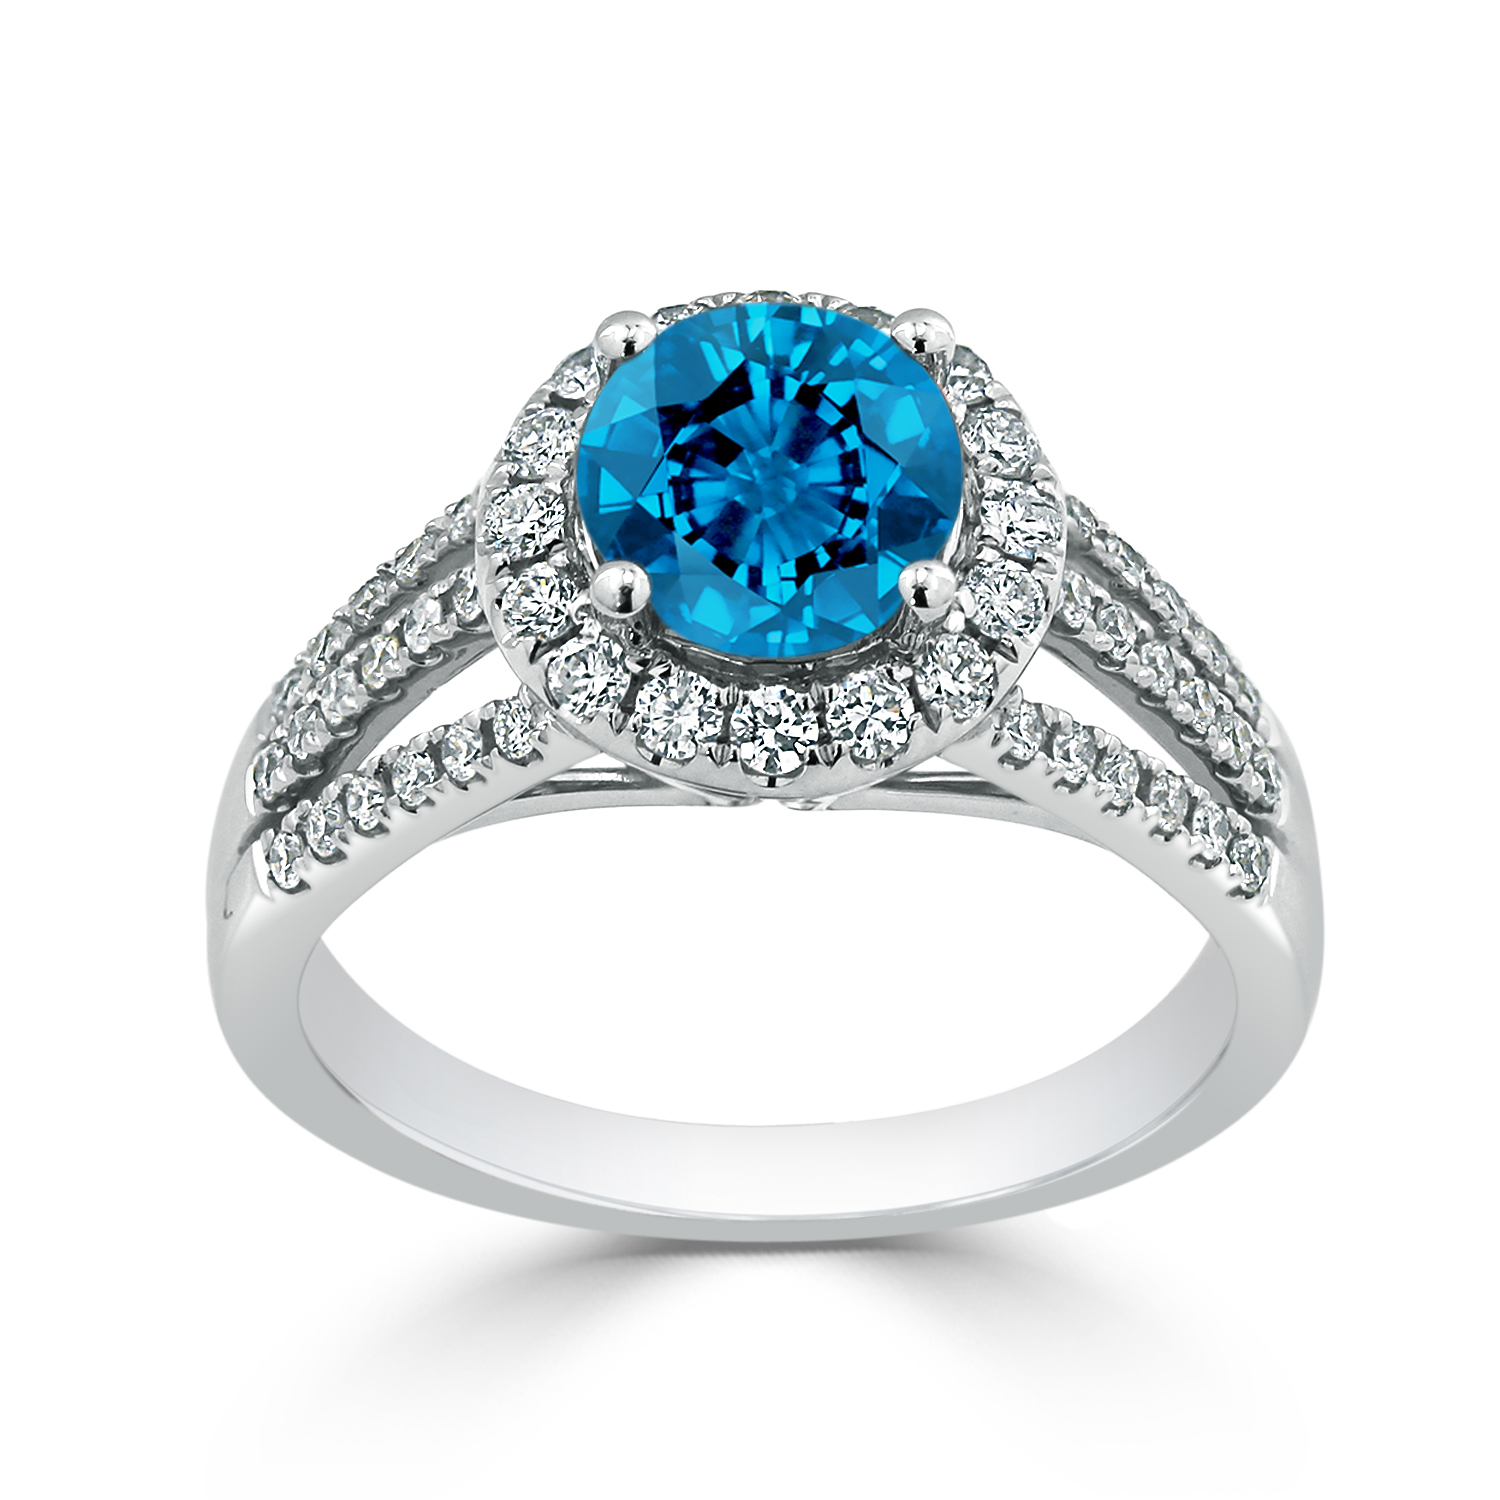 Halo Swiss Blue Topaz Diamond Ring in 14K White Gold with 1.30 carat Round Swiss Blue Topaz